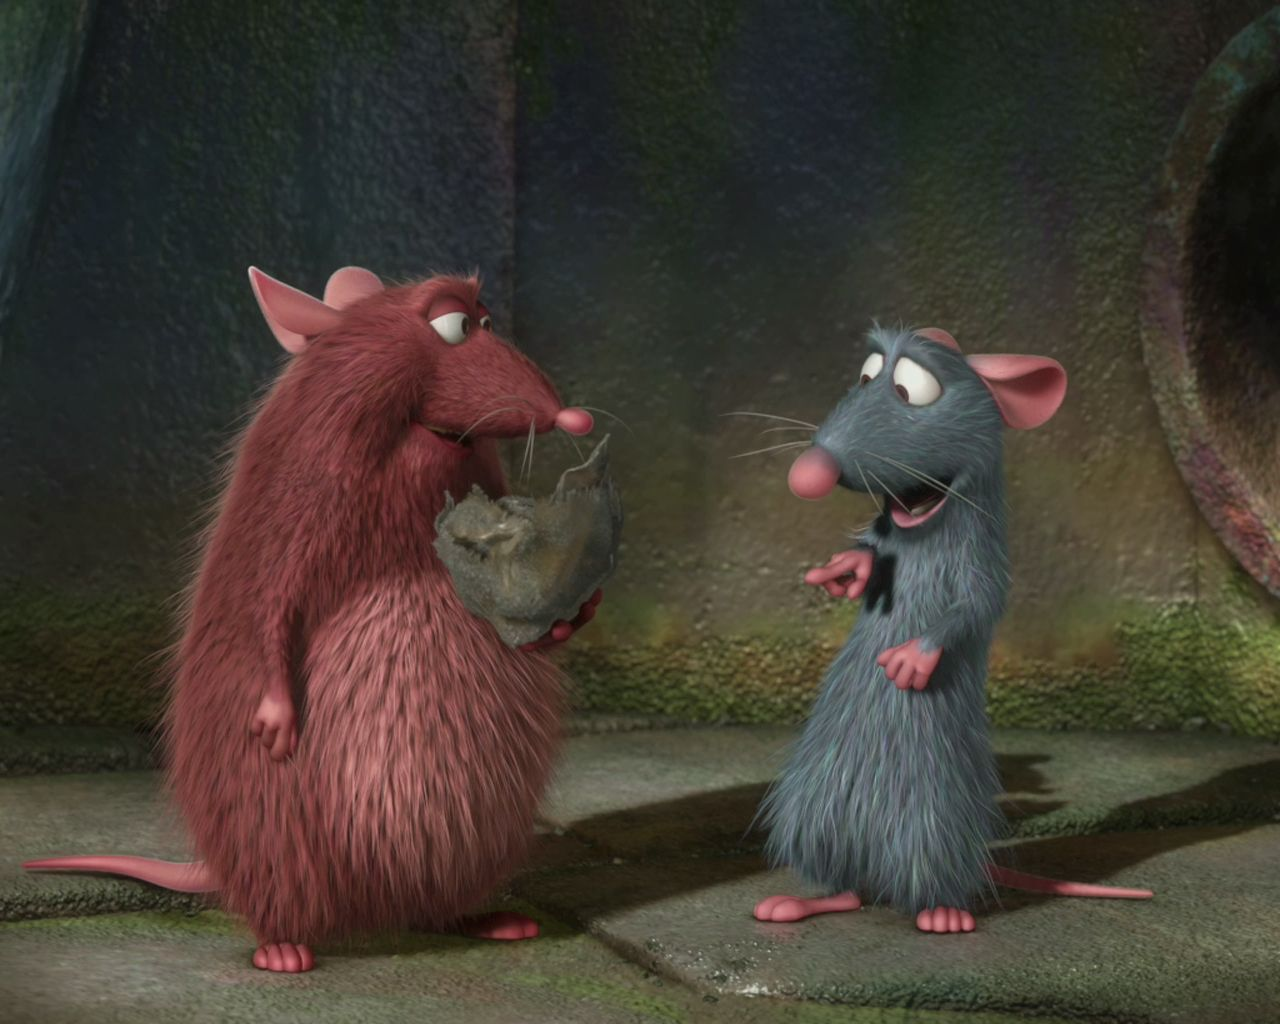 Emile And Remy Ratatouille Animated Movies Disney Movies Ratatouille Movie